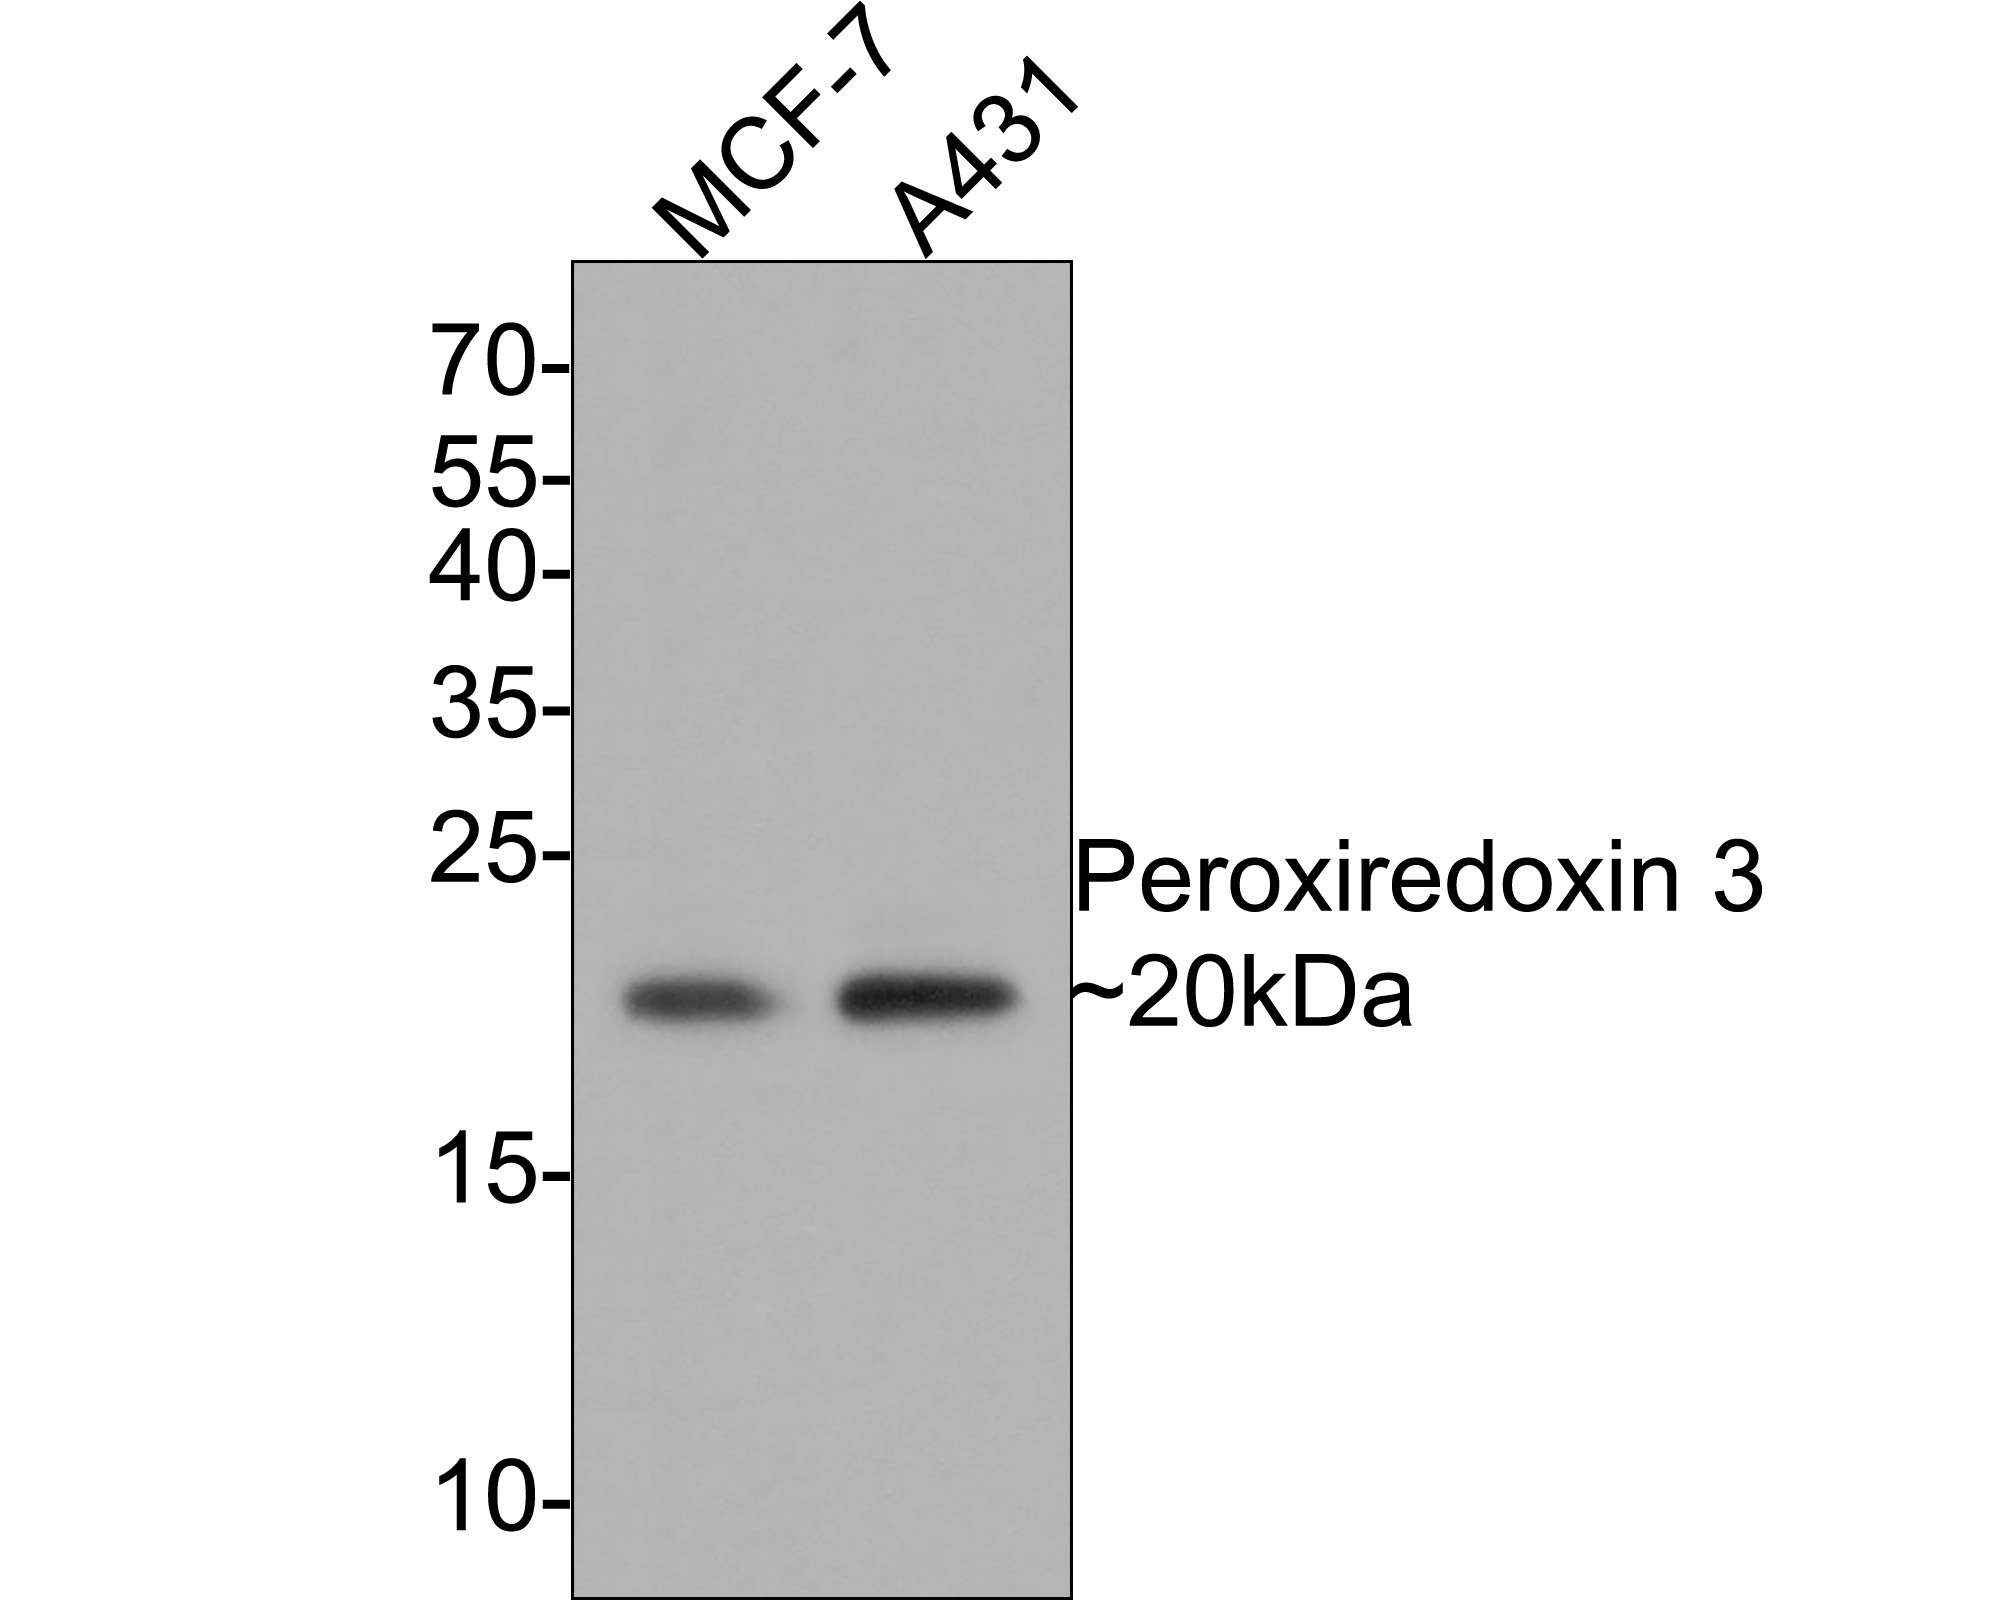 Western blot analysis of Peroxiredoxin 3 on different cell lysate using anti-Peroxiredoxin 3 antibody at 1/1,000 dilution.<br /> Positive control: <br /> Lane 1: Human liver <br /> Lane 2: MCF-7 <br /> Lane 3: A431